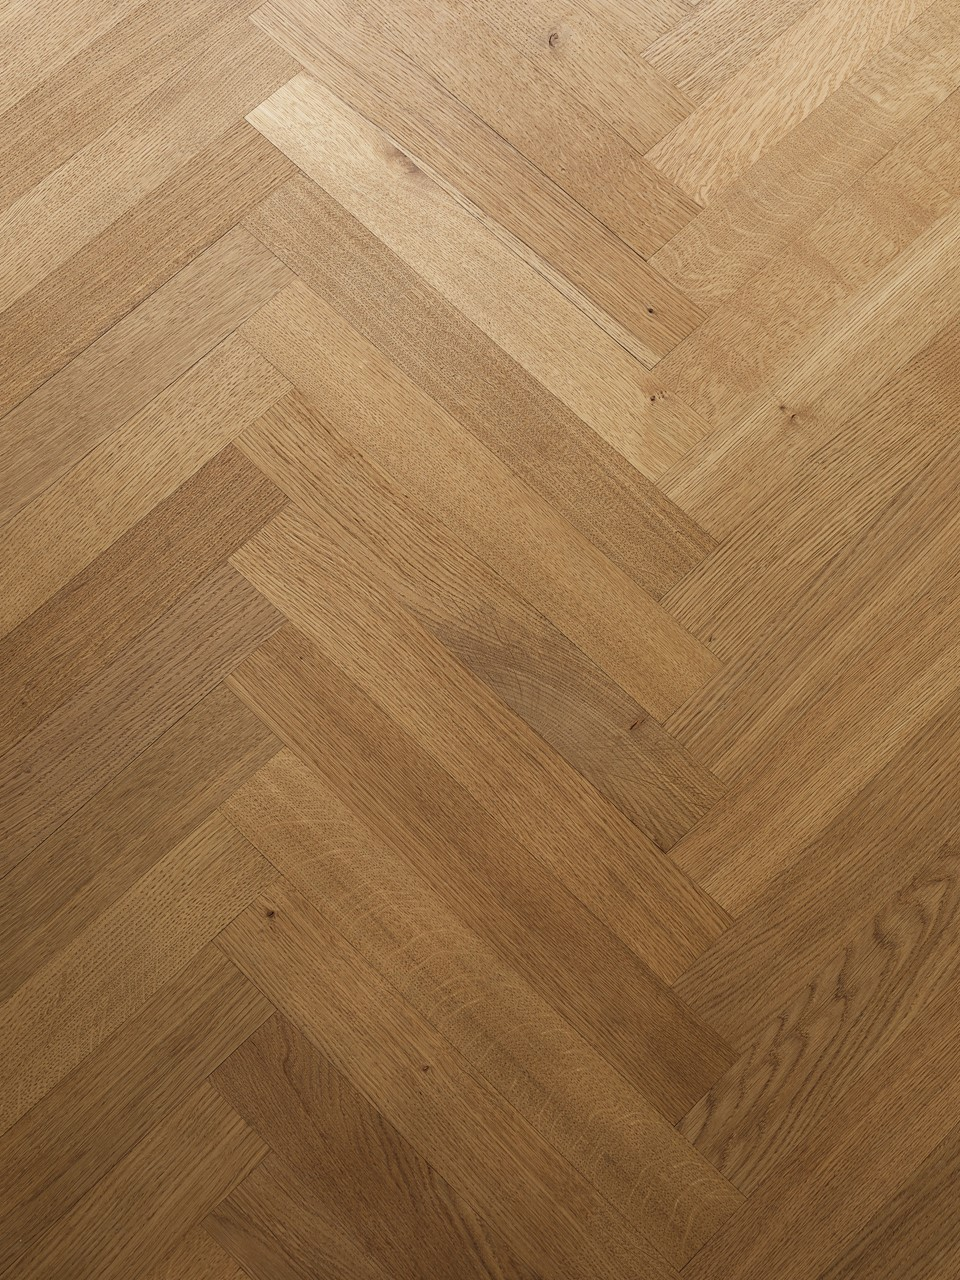 oak-herringbone-floor_natural-oil_villa-gentofte_sildebensparket_dinesen.jpg